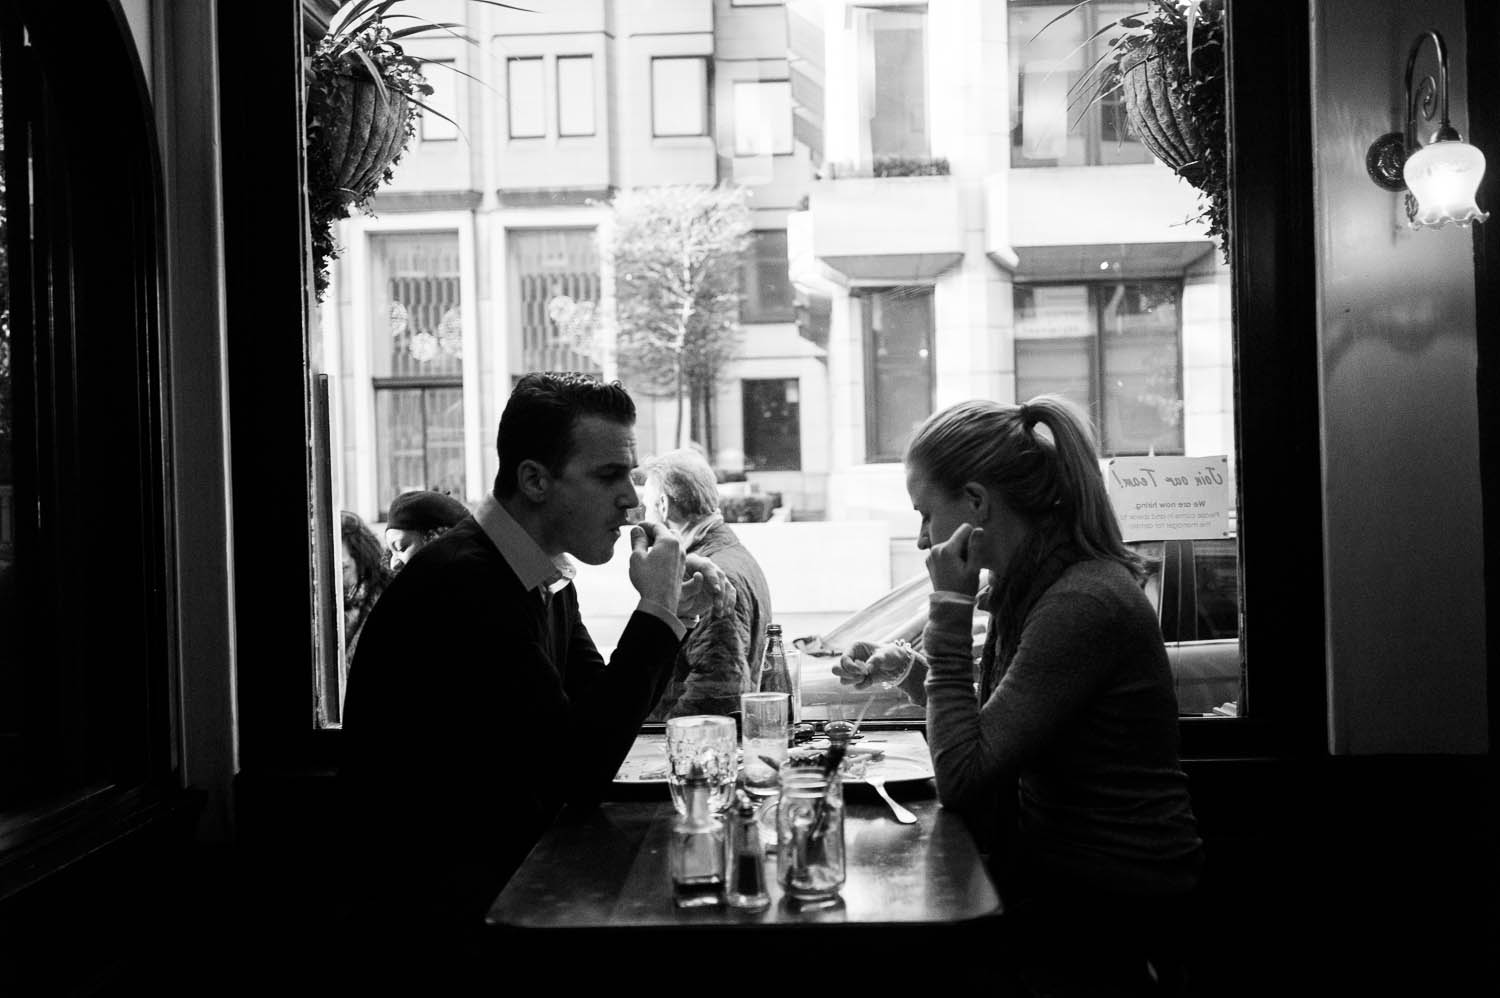 A couple dining at a pub in London